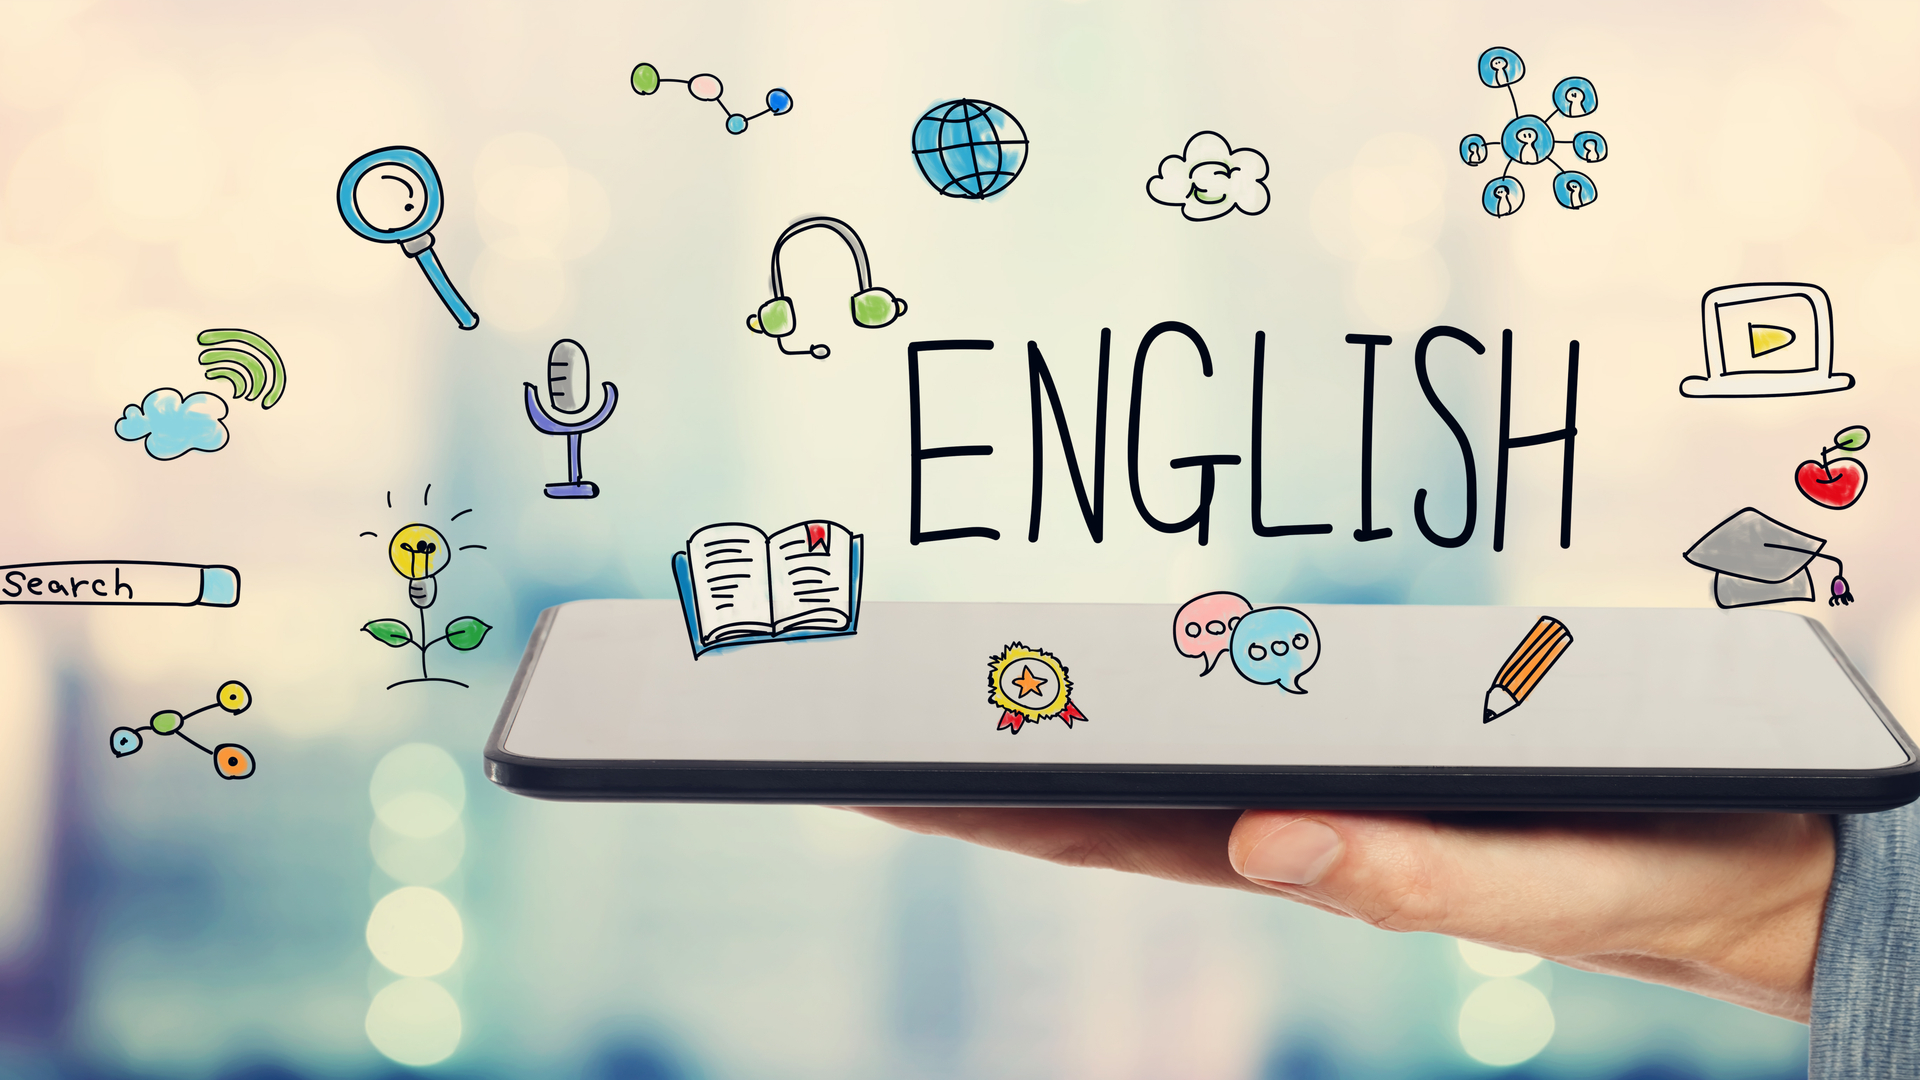 English Courses - Online Classes with Videos | Study.com